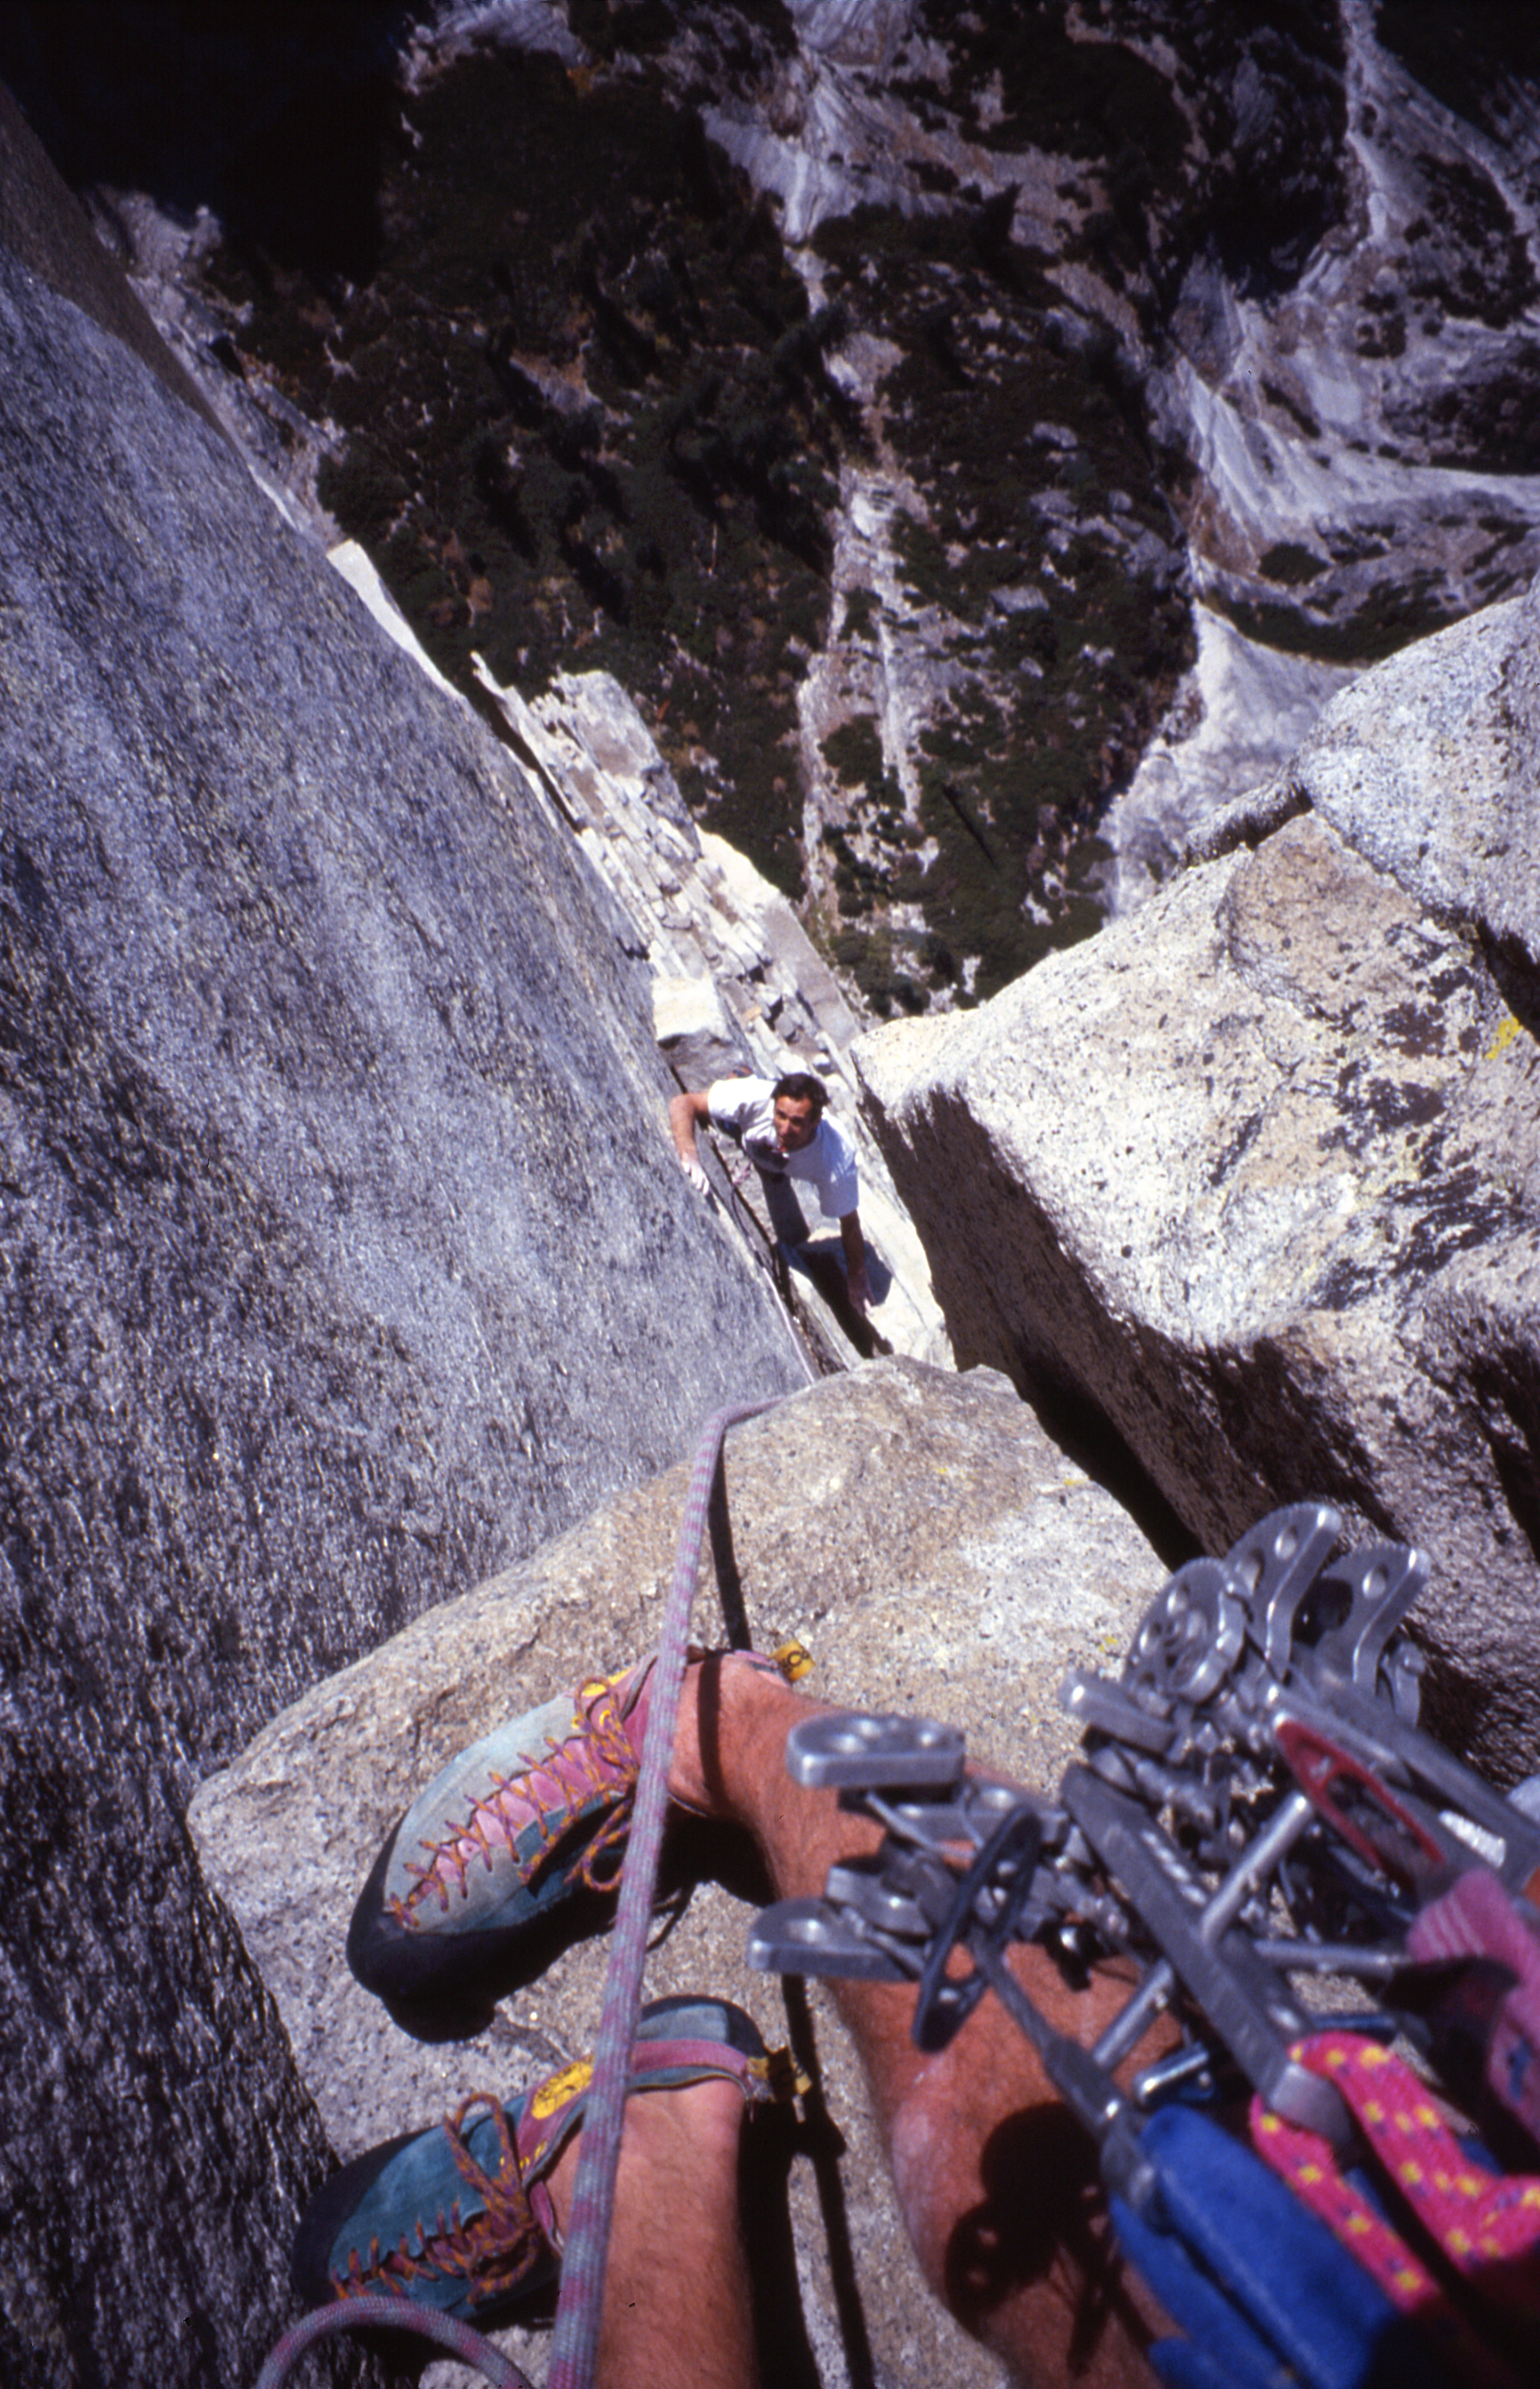 Looking down the Regular Route on the northwest face of Half Dome, 1994.